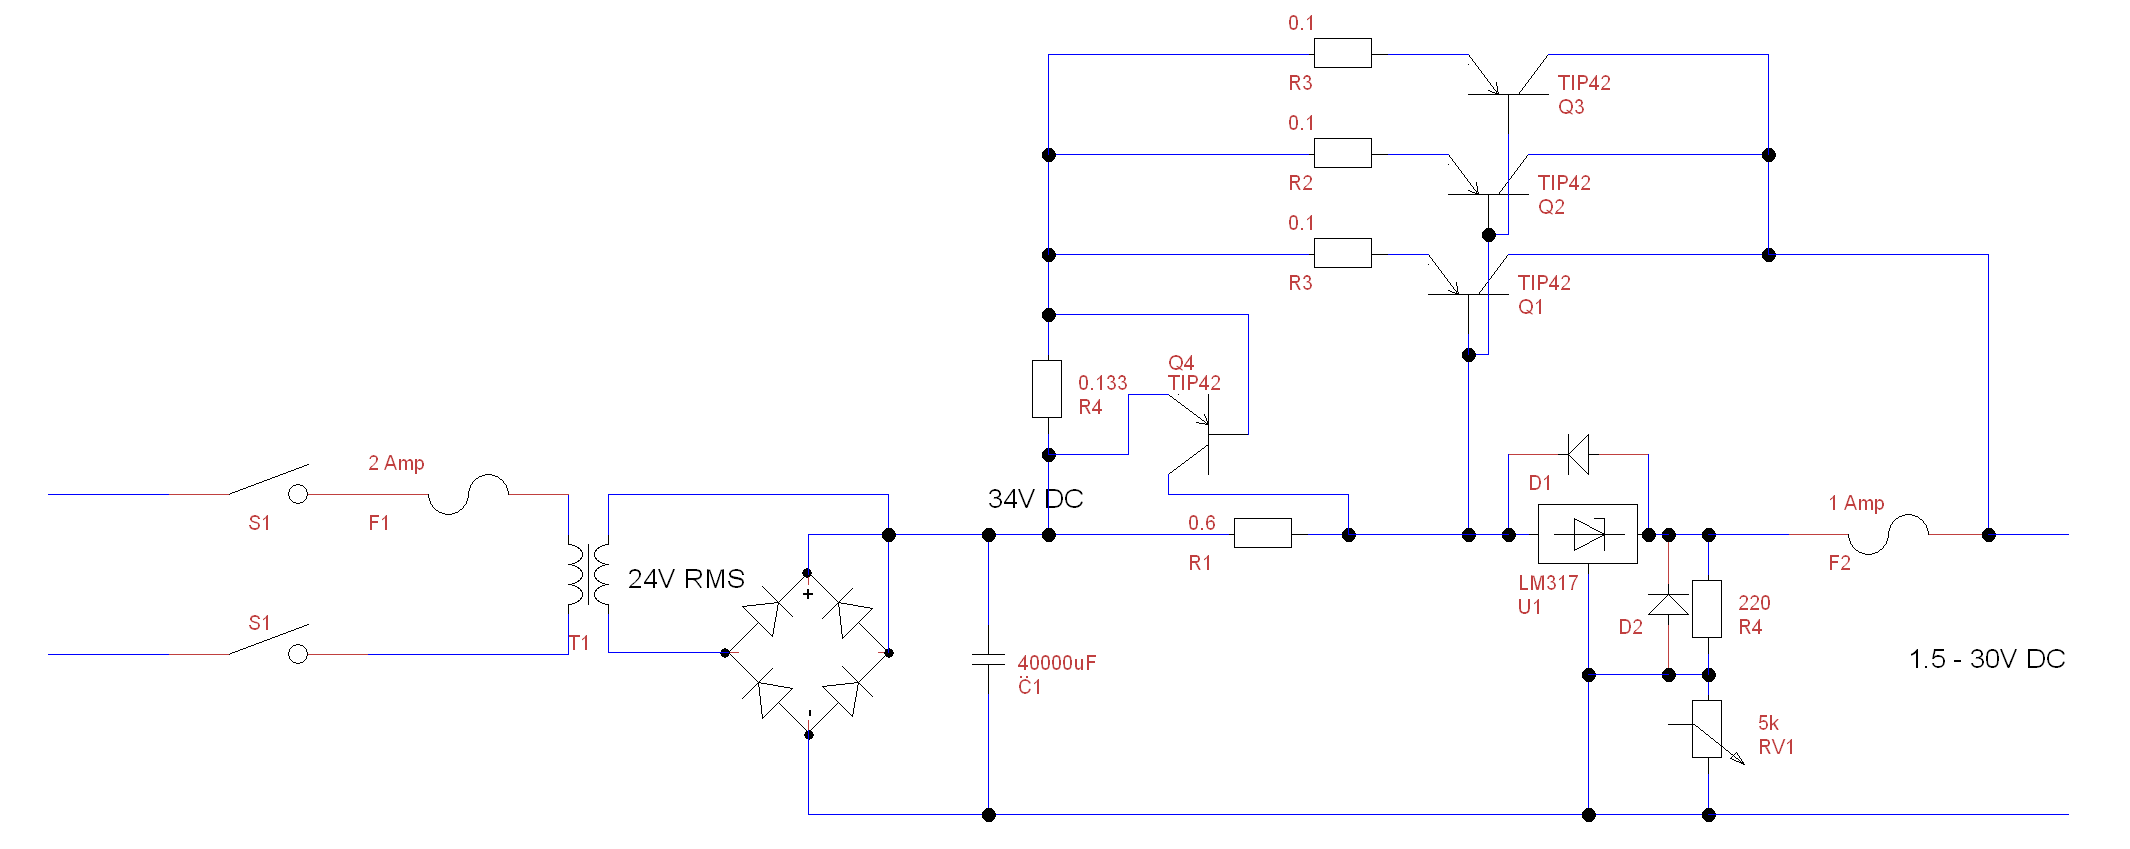 7amp Psu Circuit Diagram Of Power Supply